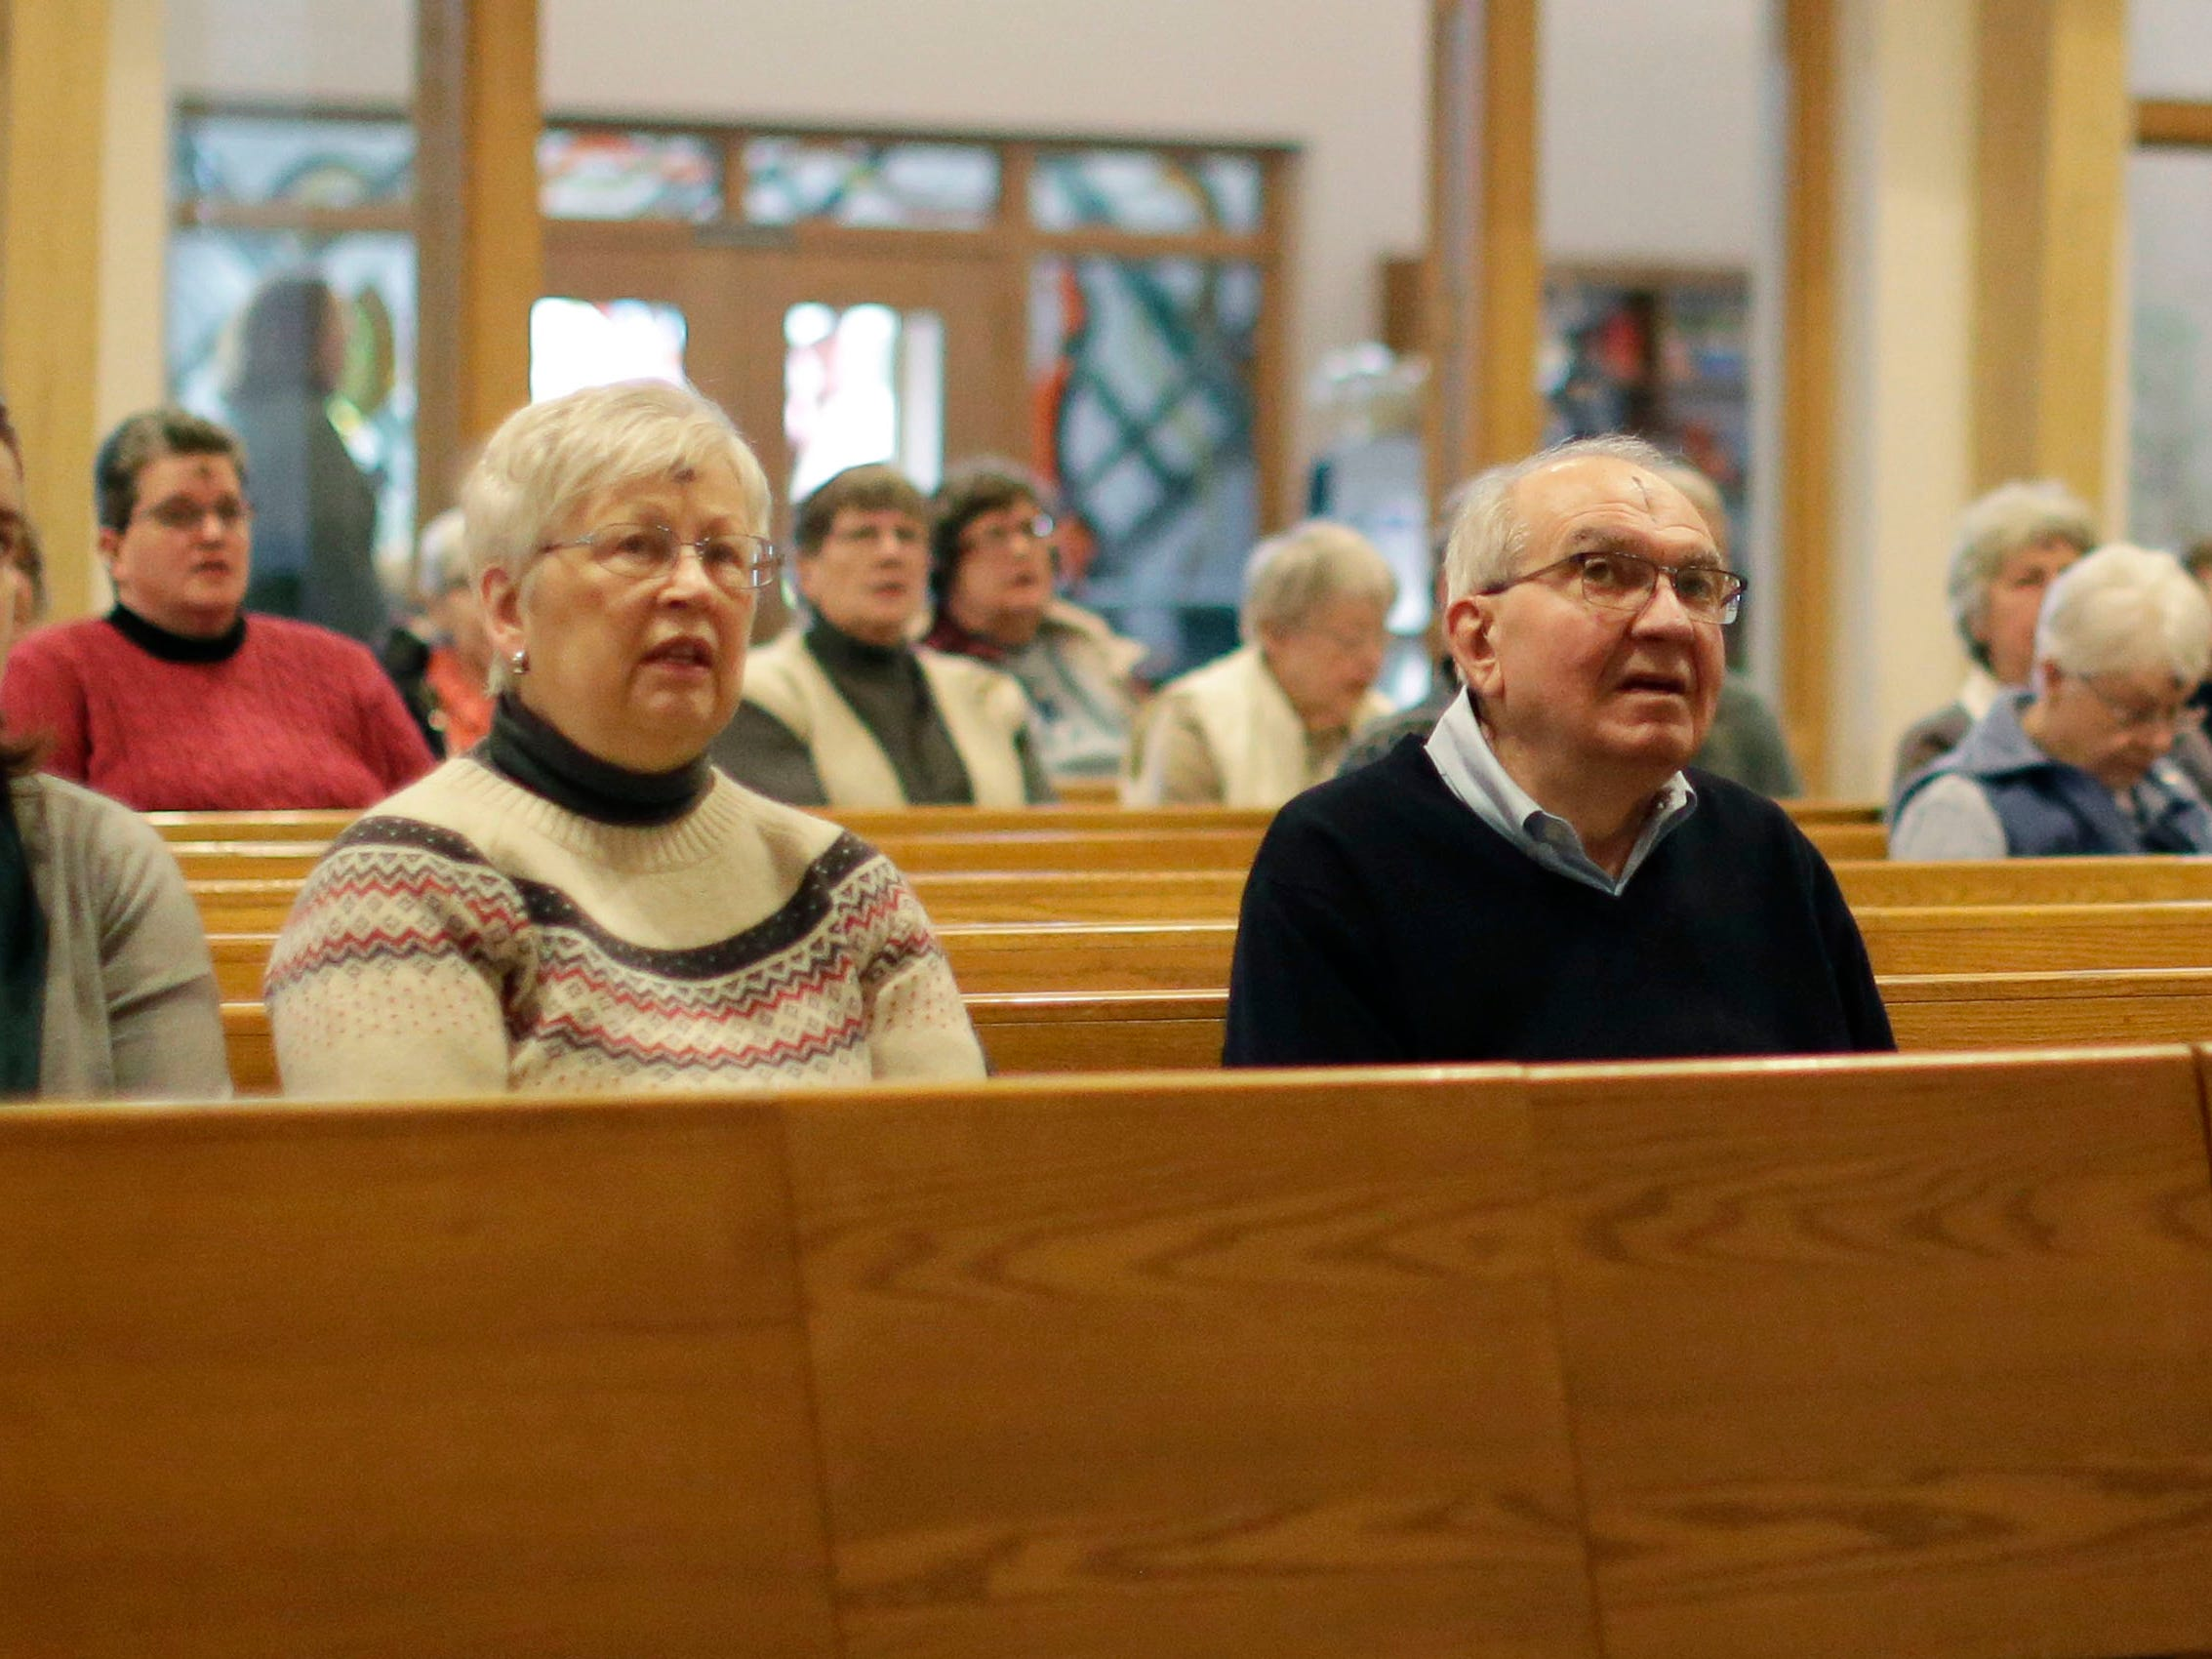 Parishioners at First United Lutheran Church wear ashes in the sign of the cross during Ash Wednesday service, Wednesday, March 6, 2019, in Sheboygan, Wis.